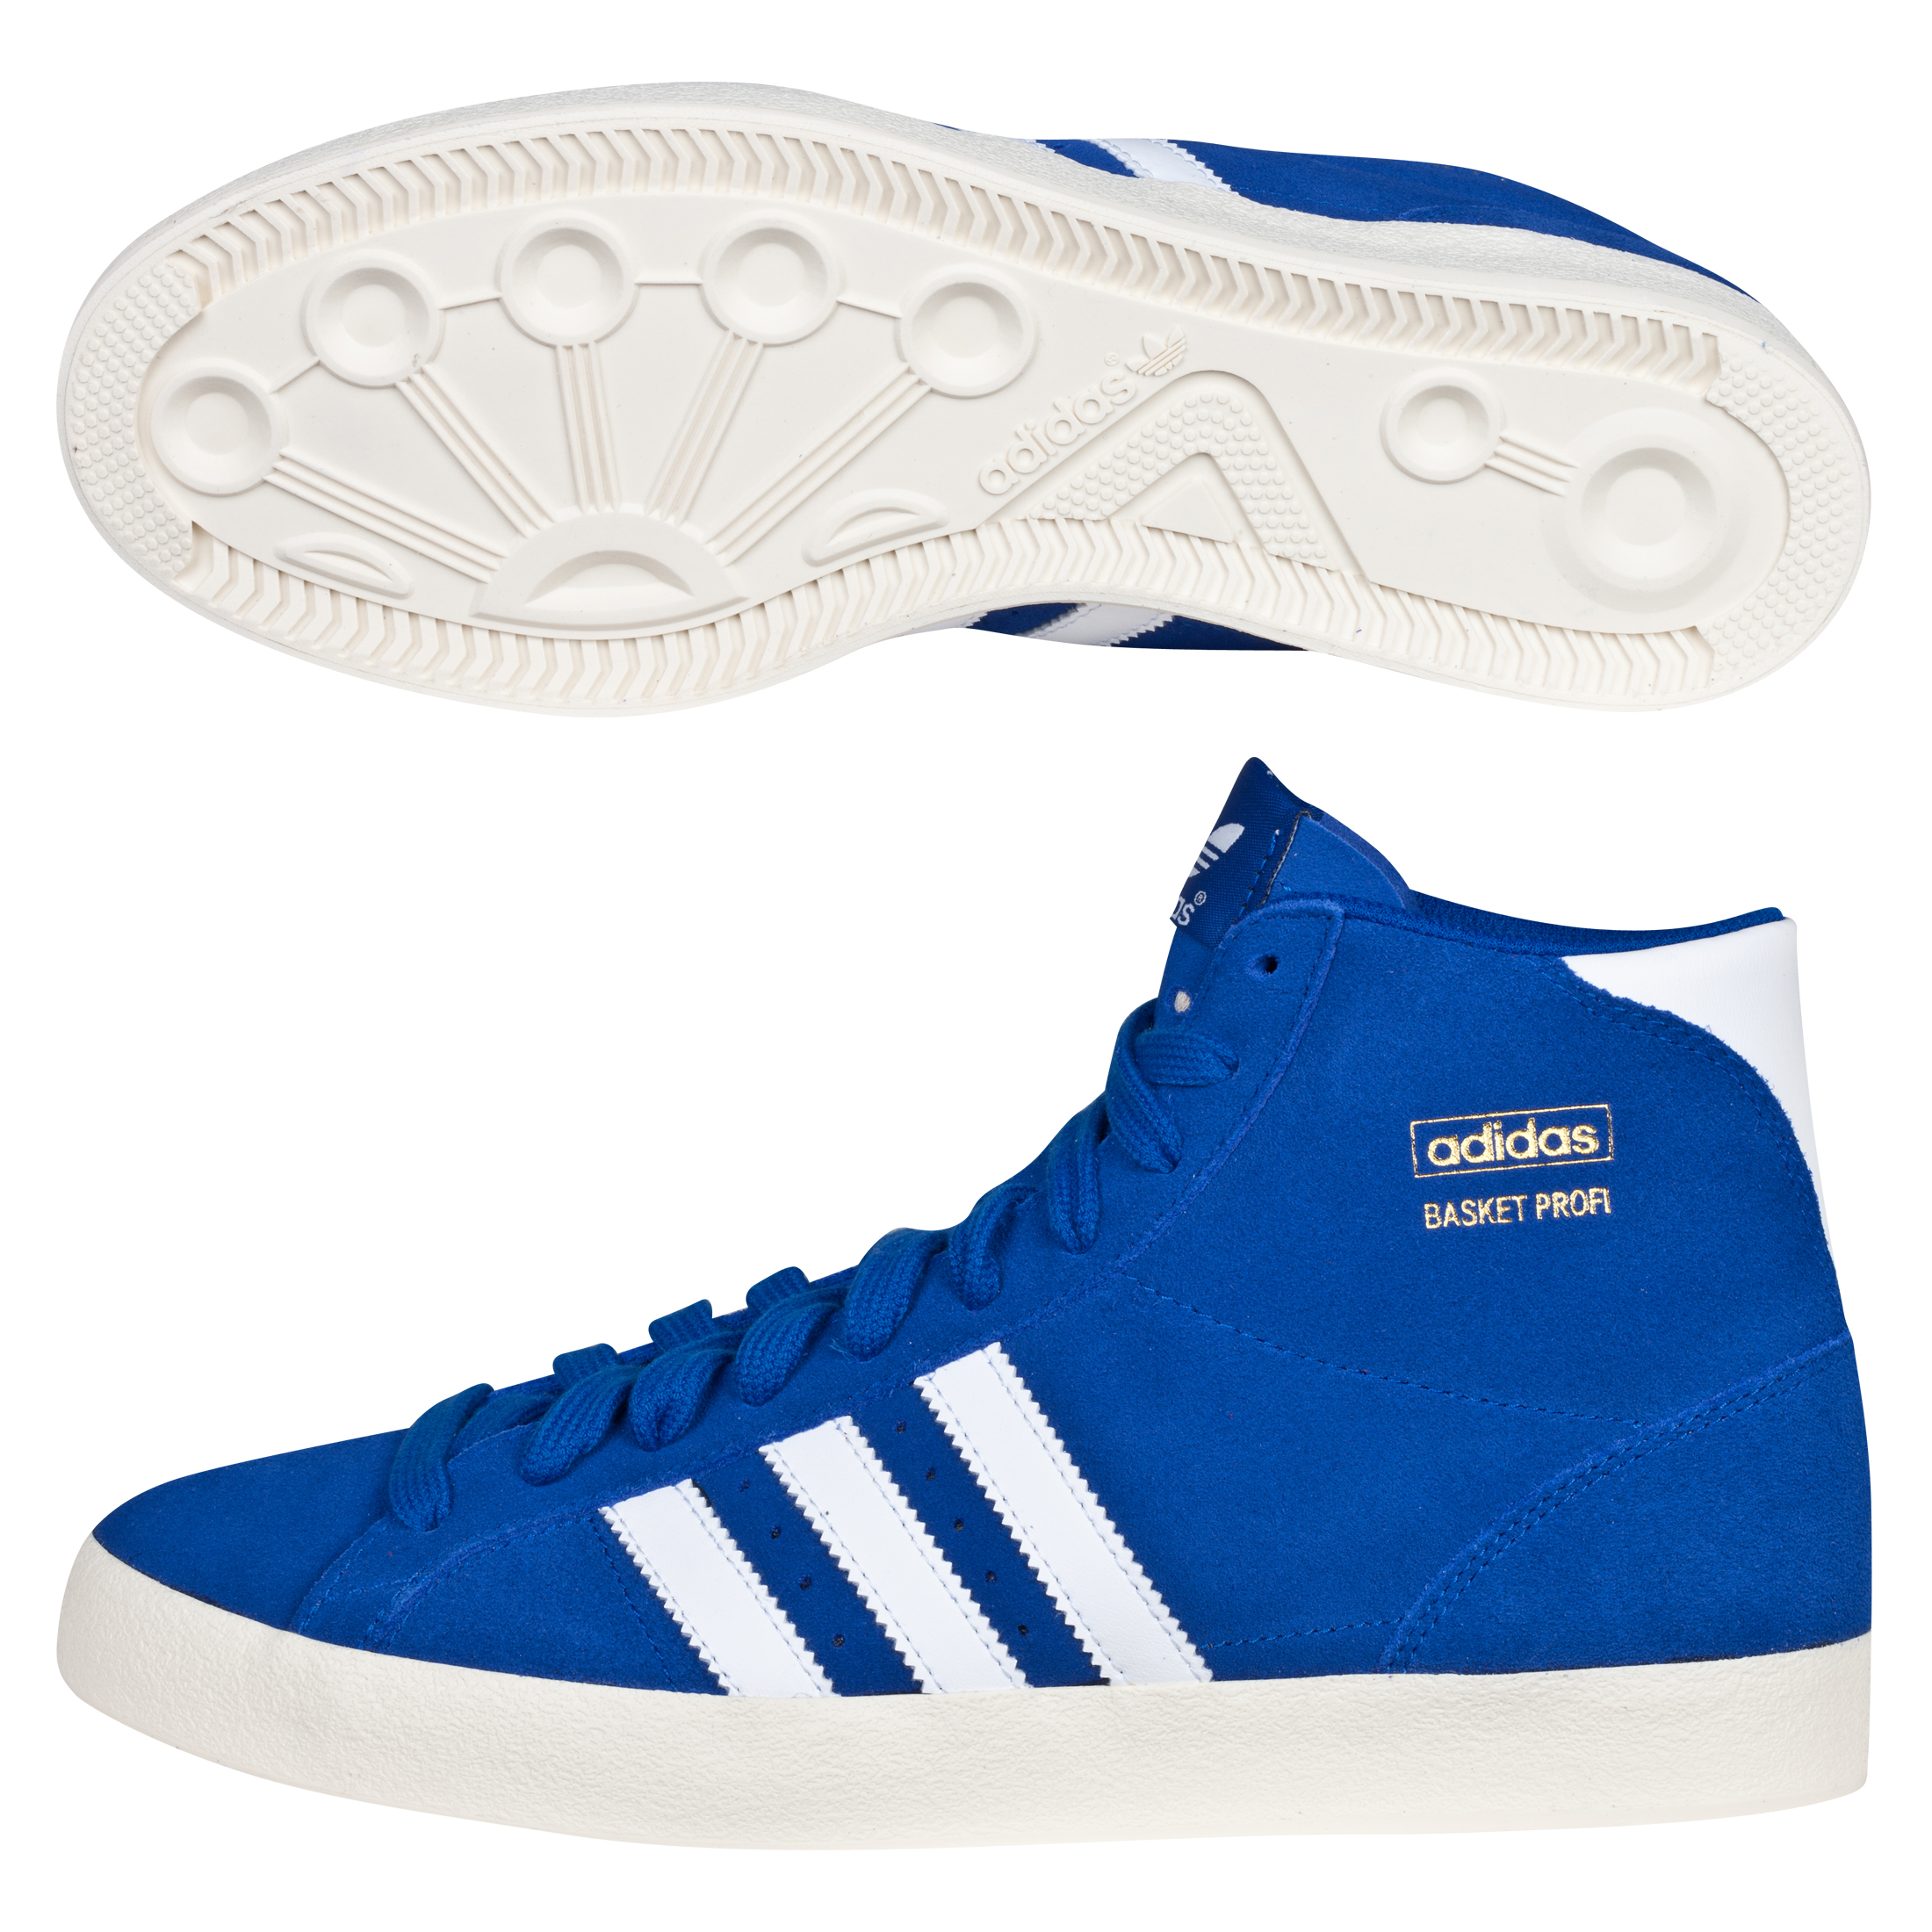 Adidas Shoes High Tops For Boys Blue Adidas originals basket profiAdidas Shoes High Tops For Boys